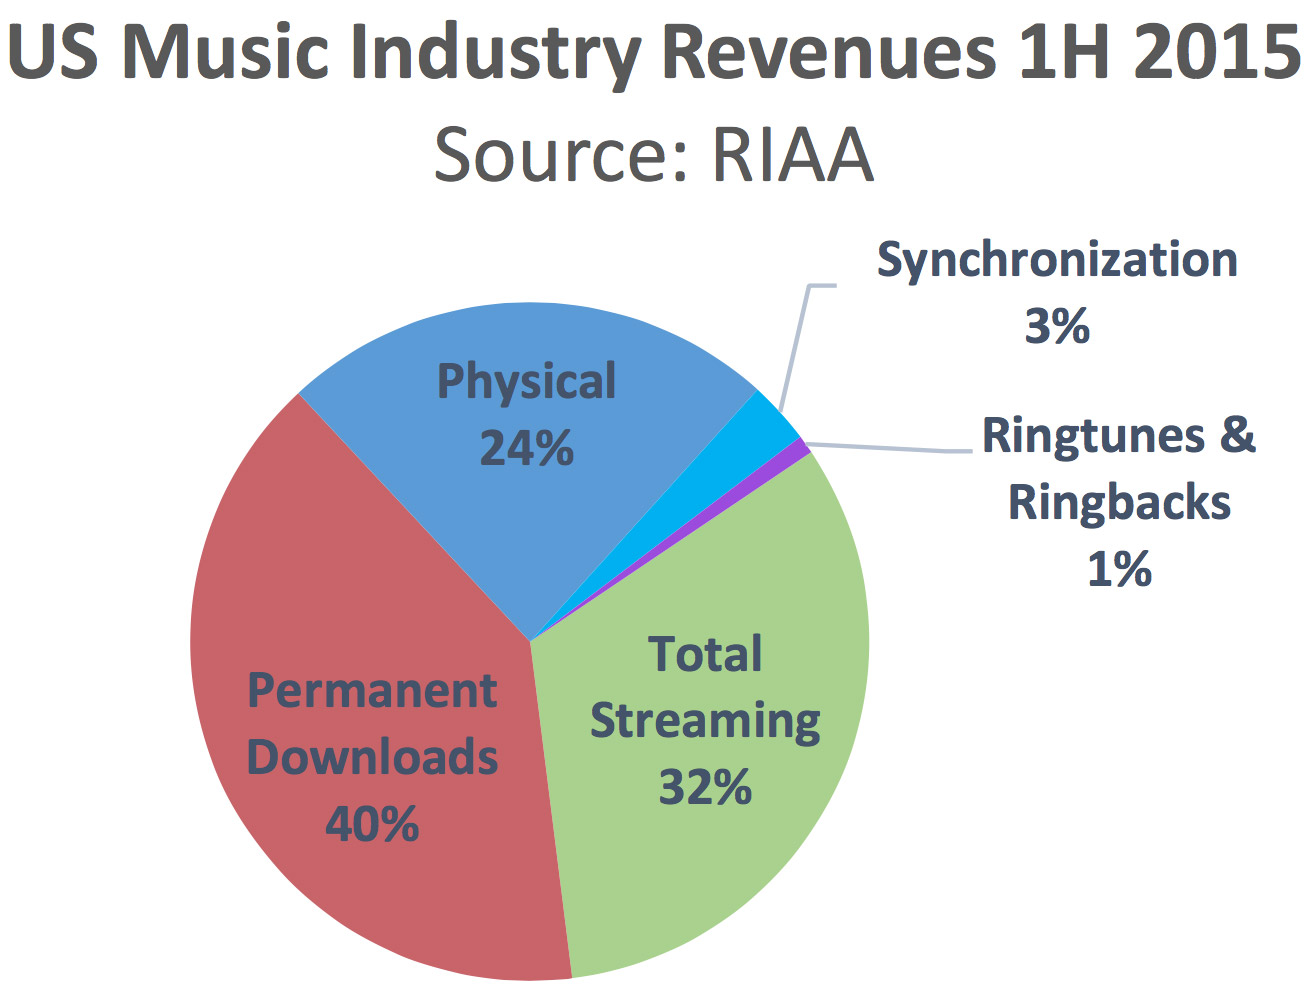 RIAA Chart Showing Sales Breakdown for 2015